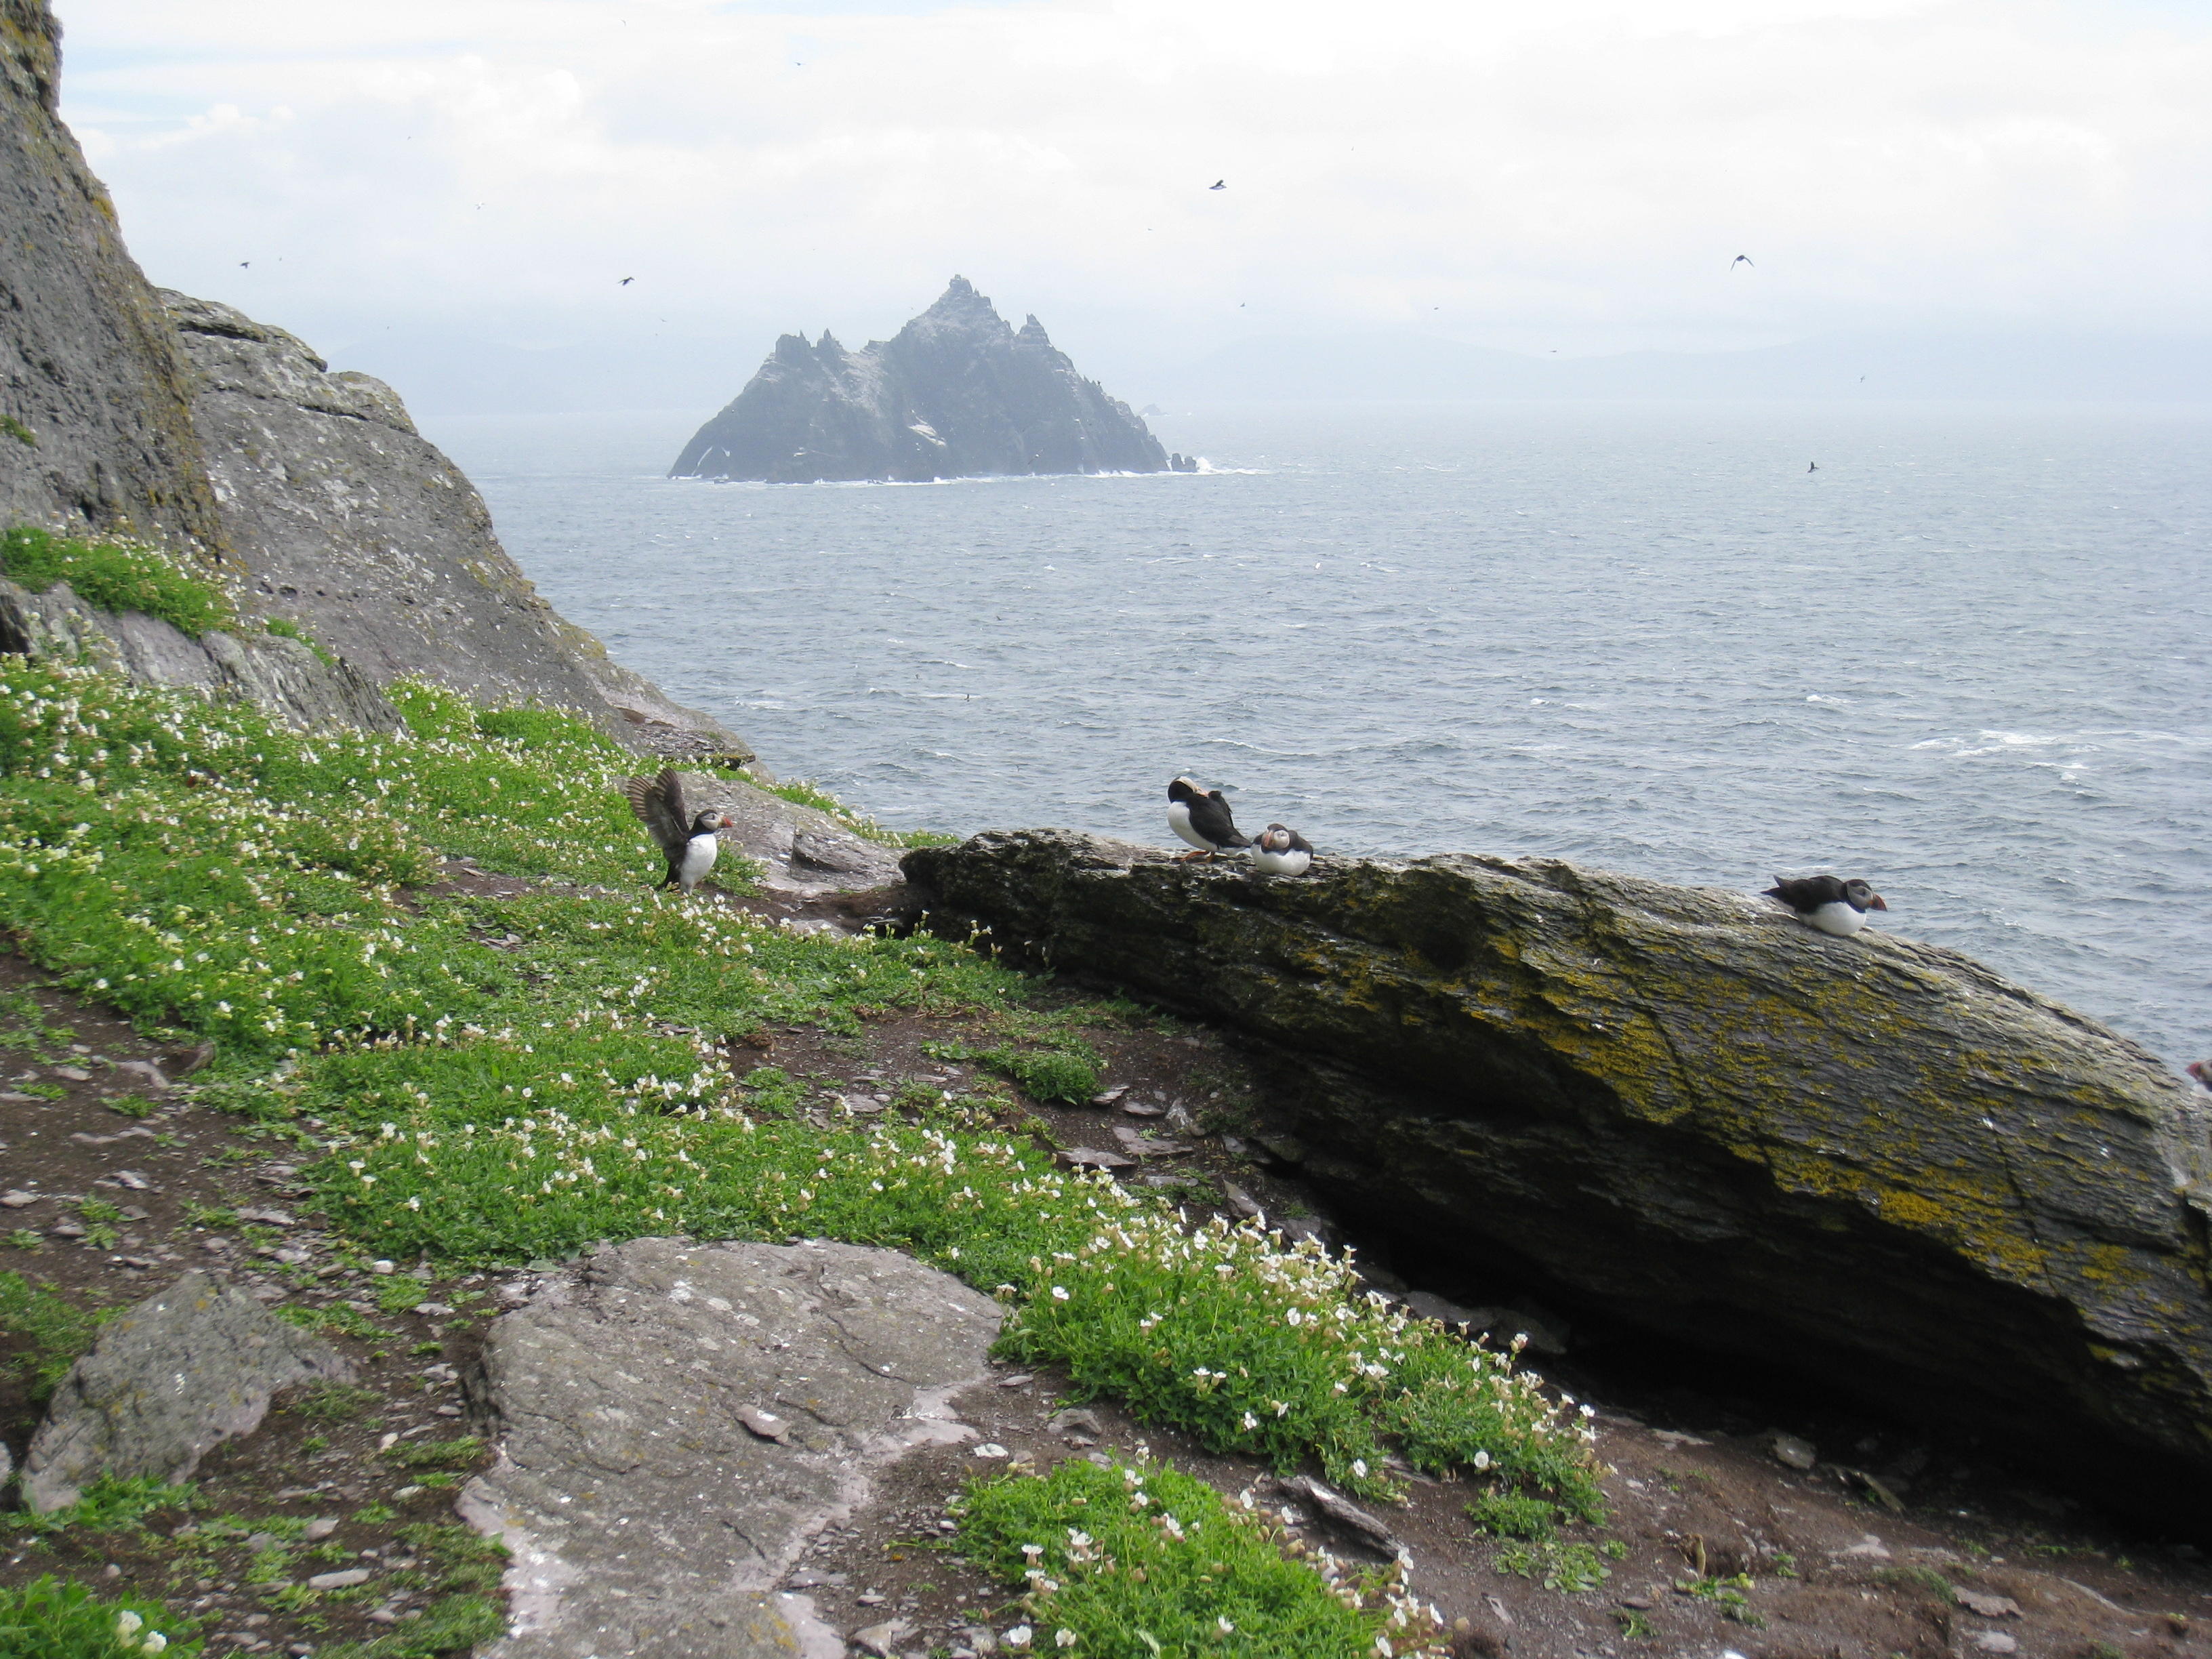 essay on skellig Nine miles off the coast of county kerry in the west of ireland there are two small rocky islands peeking out of the atlantic ocean the larger of the two, skellig michael, is home to something quite extraordinary – a 1400 year old monastery which only a handful of people get to see each year .